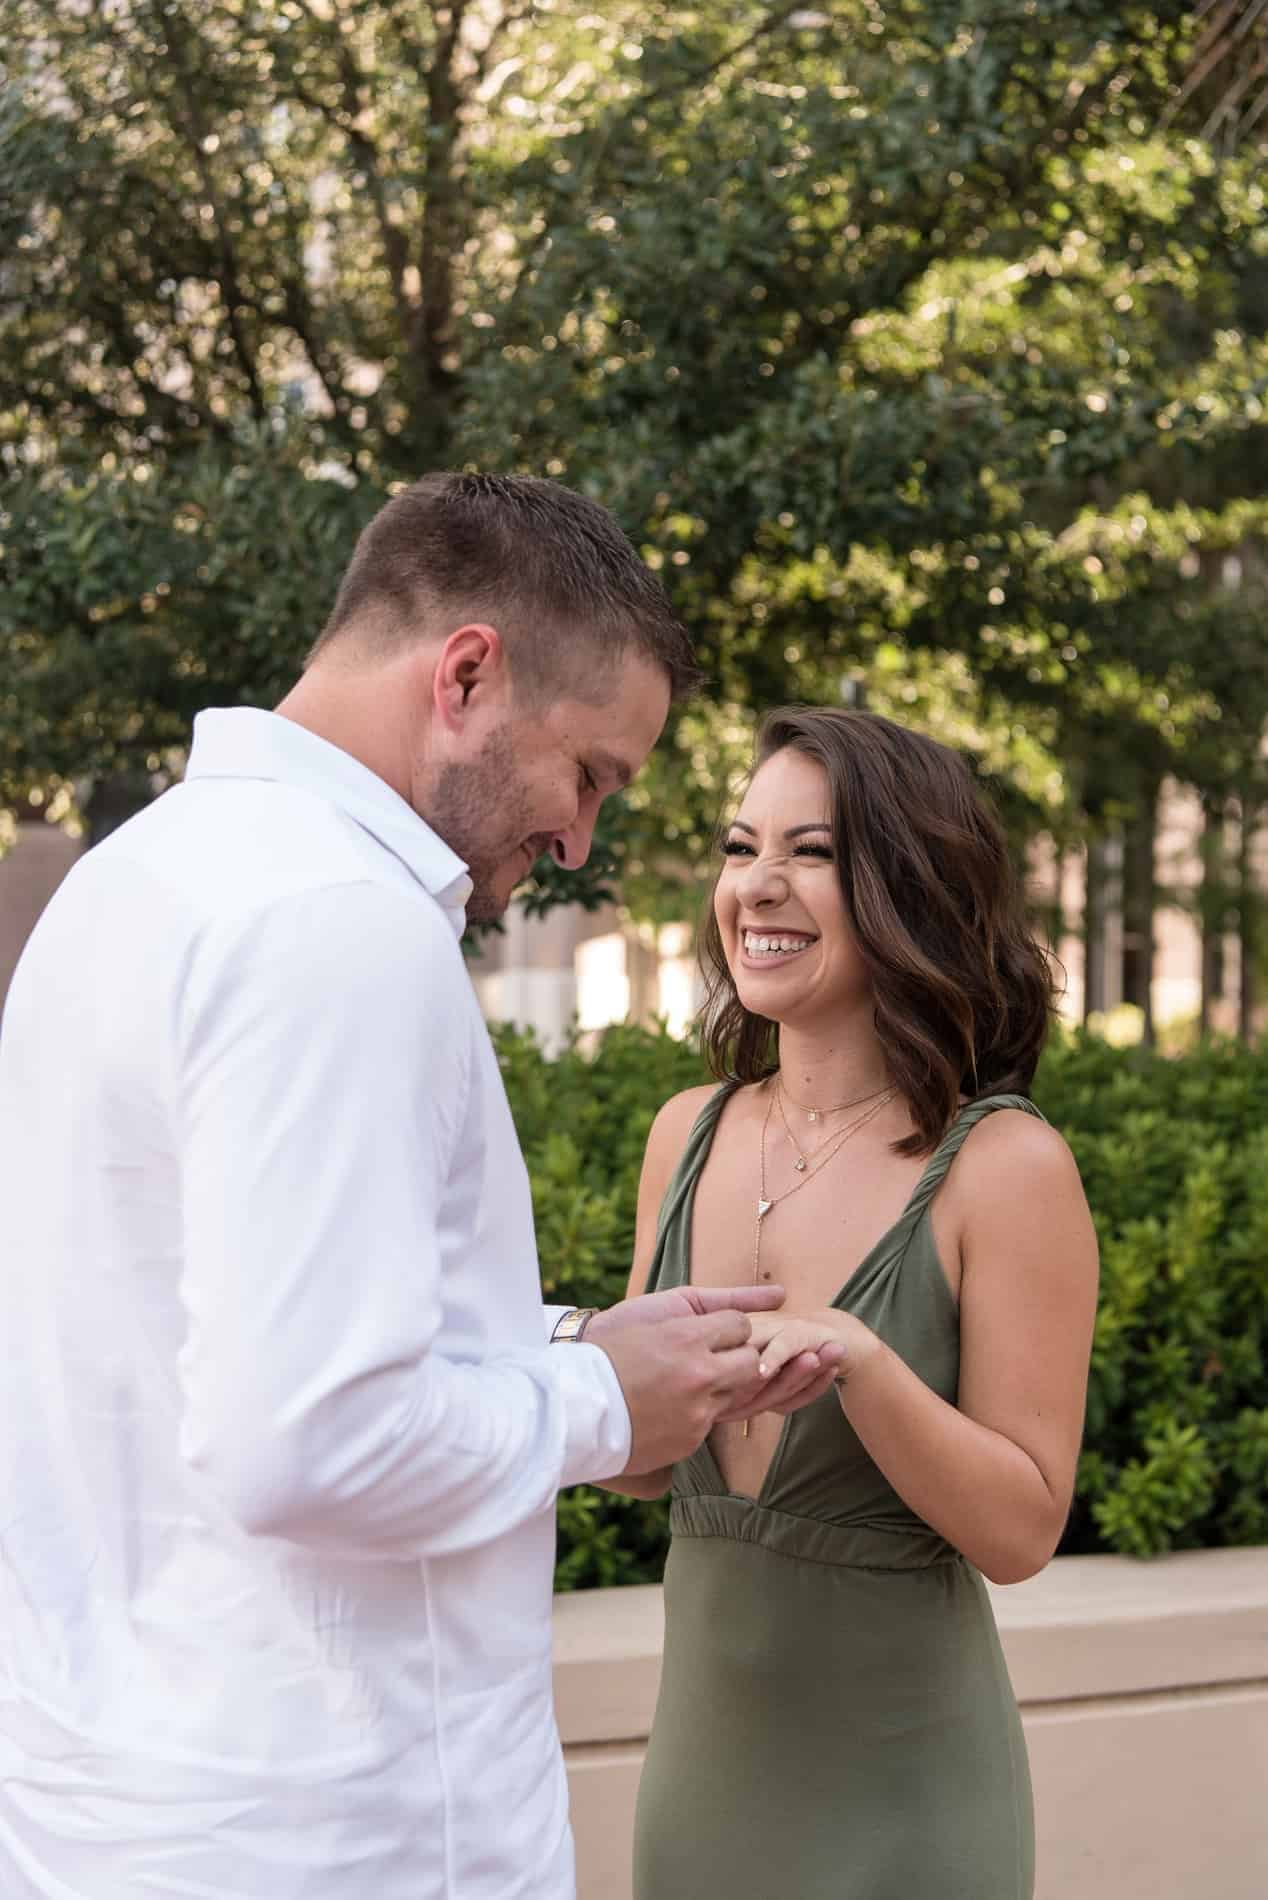 He puts the ring on his Fiance